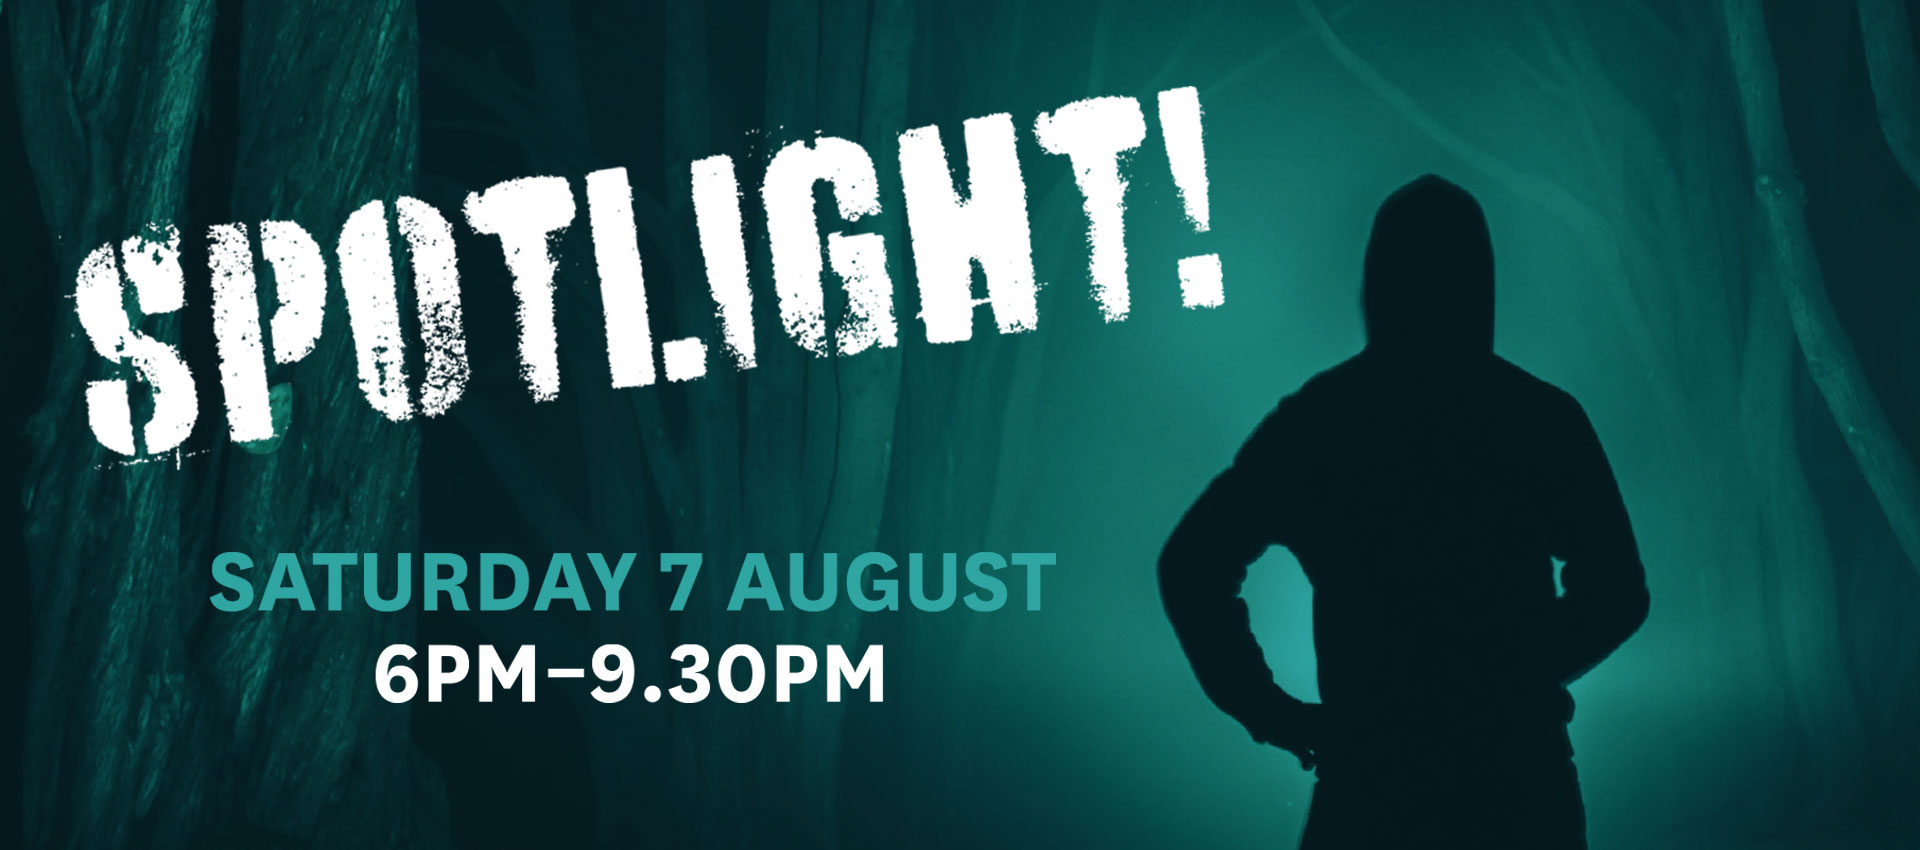 Text: Spotlight! Sunday 7 August, 6pm to 9.30pm